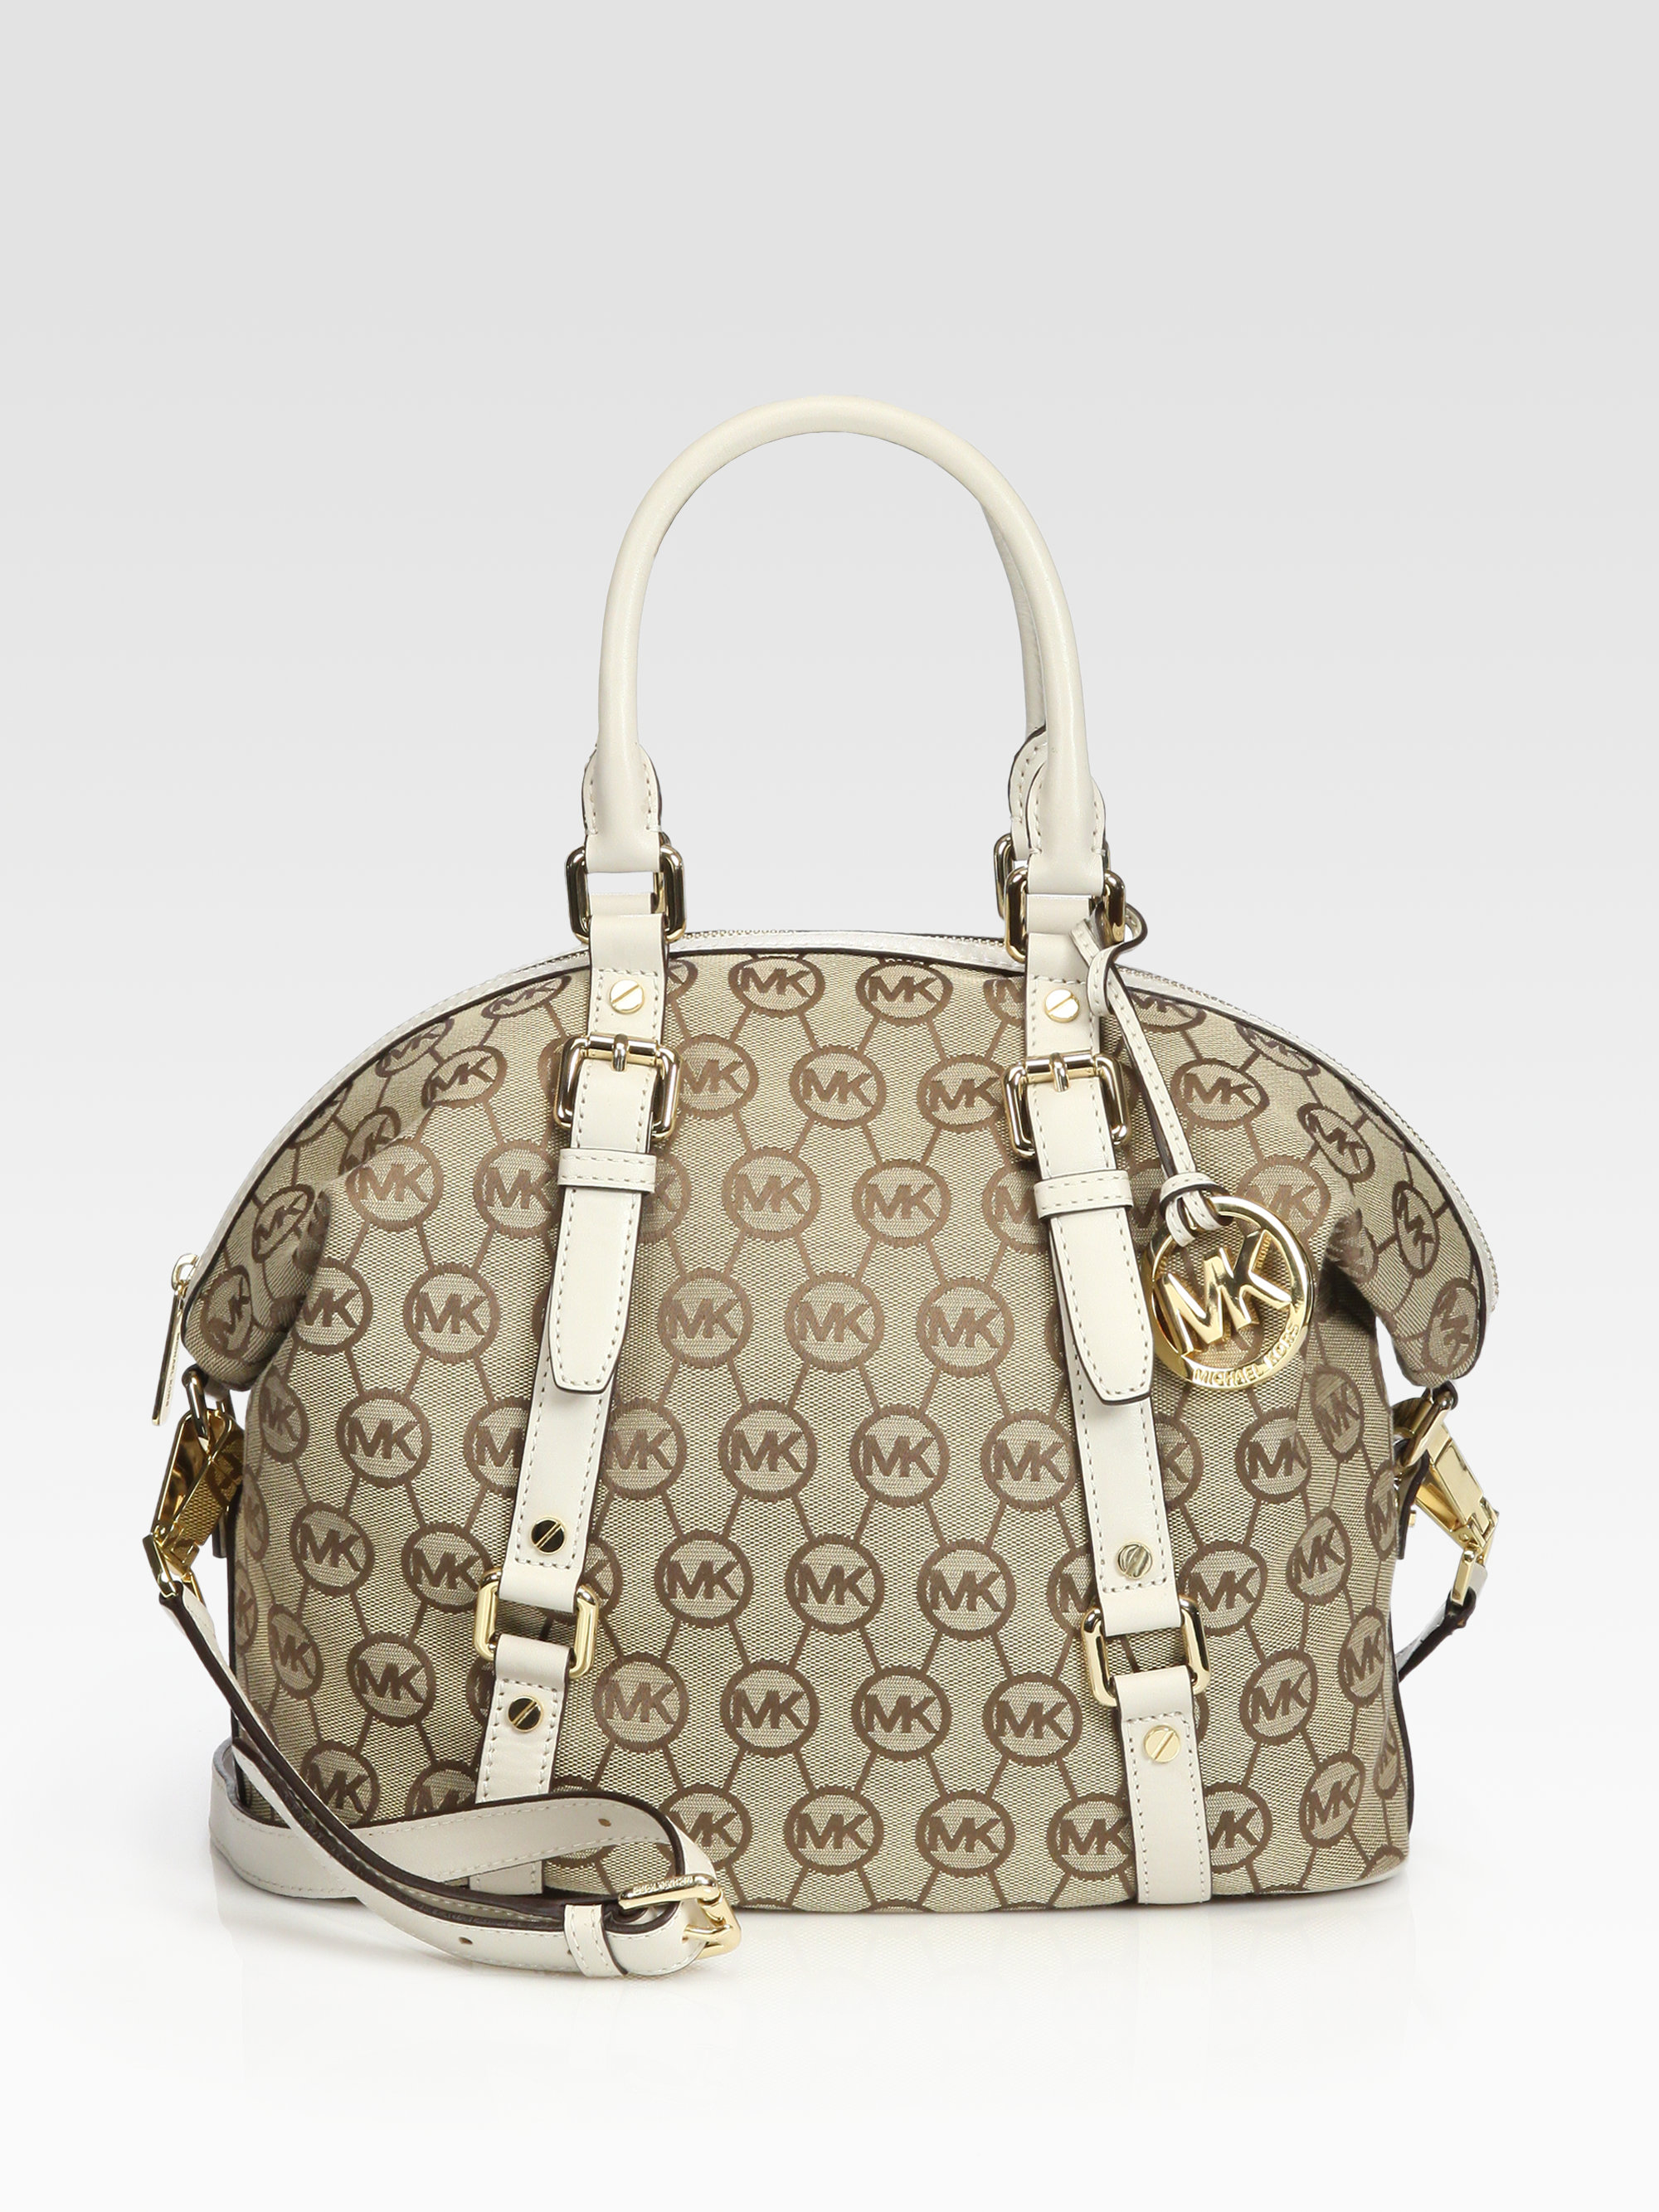 6b4d3805db8e8 Lyst - MICHAEL Michael Kors Bedford Medium Jacquard Satchel in Natural